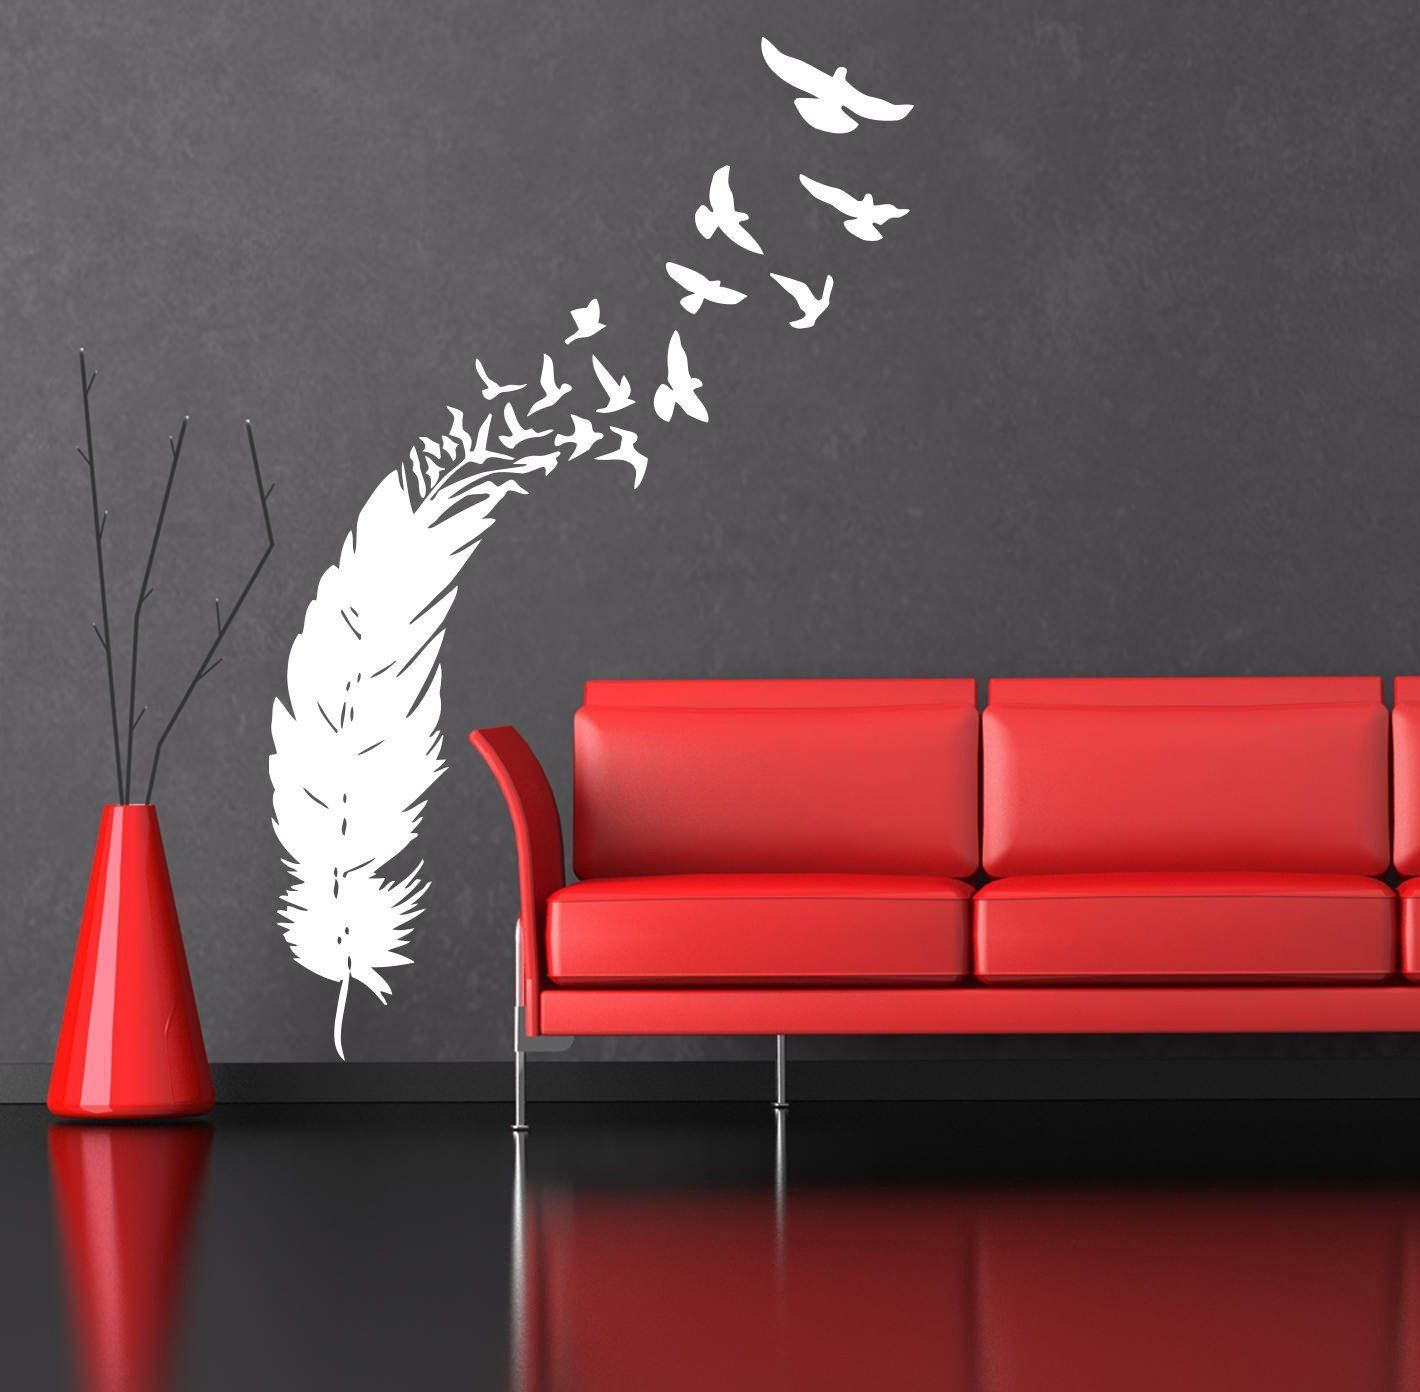 Wandtapetenaufkleber wall decals feather birds nib style feather peacock living room